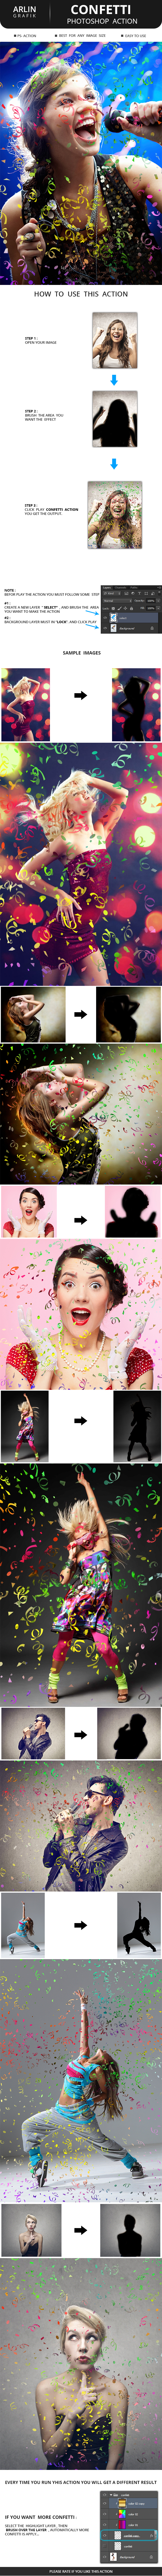 Confetti Photoshop Action - Photo Effects Actions